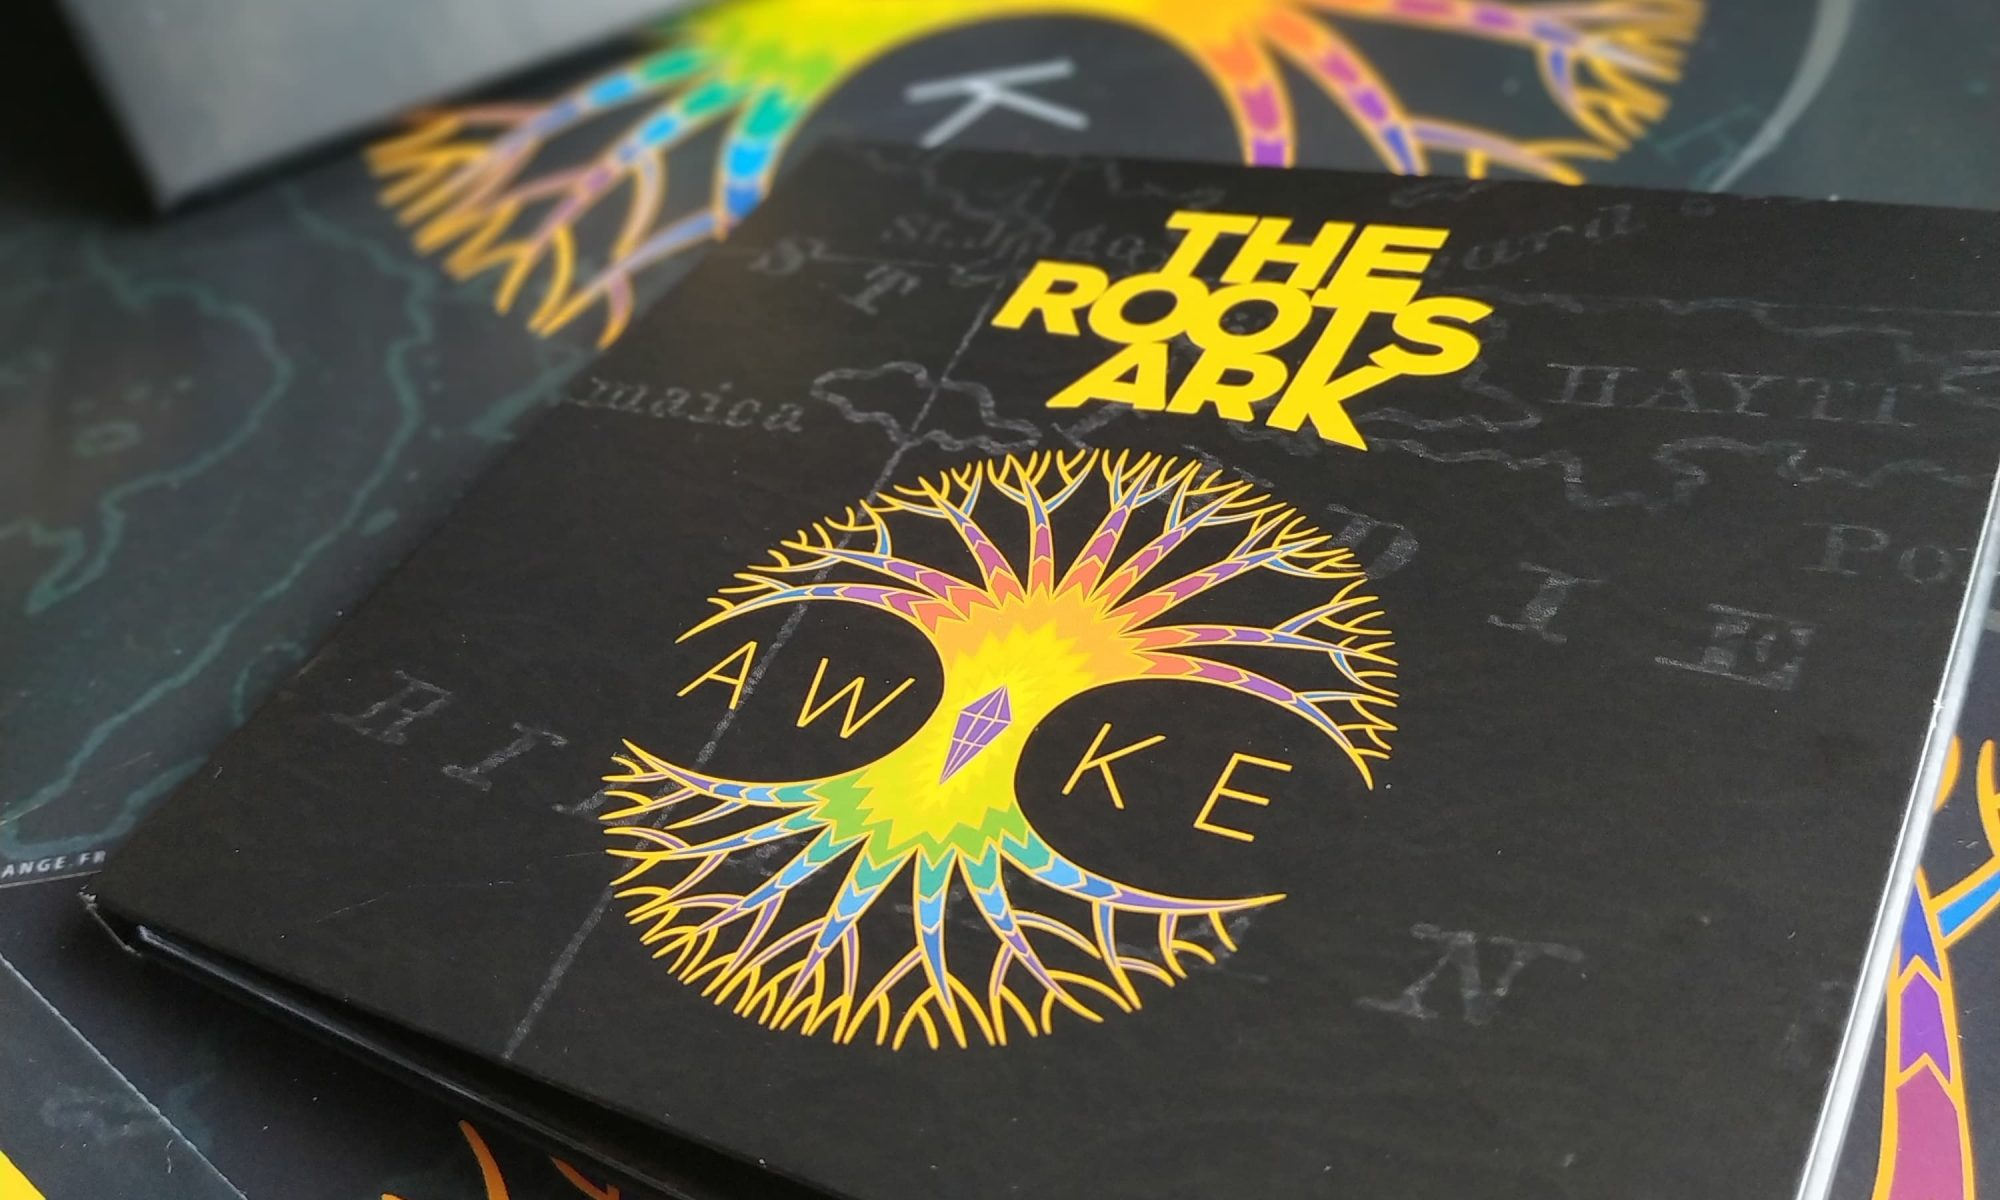 The Roots Ark - AWAKE- Album 2019